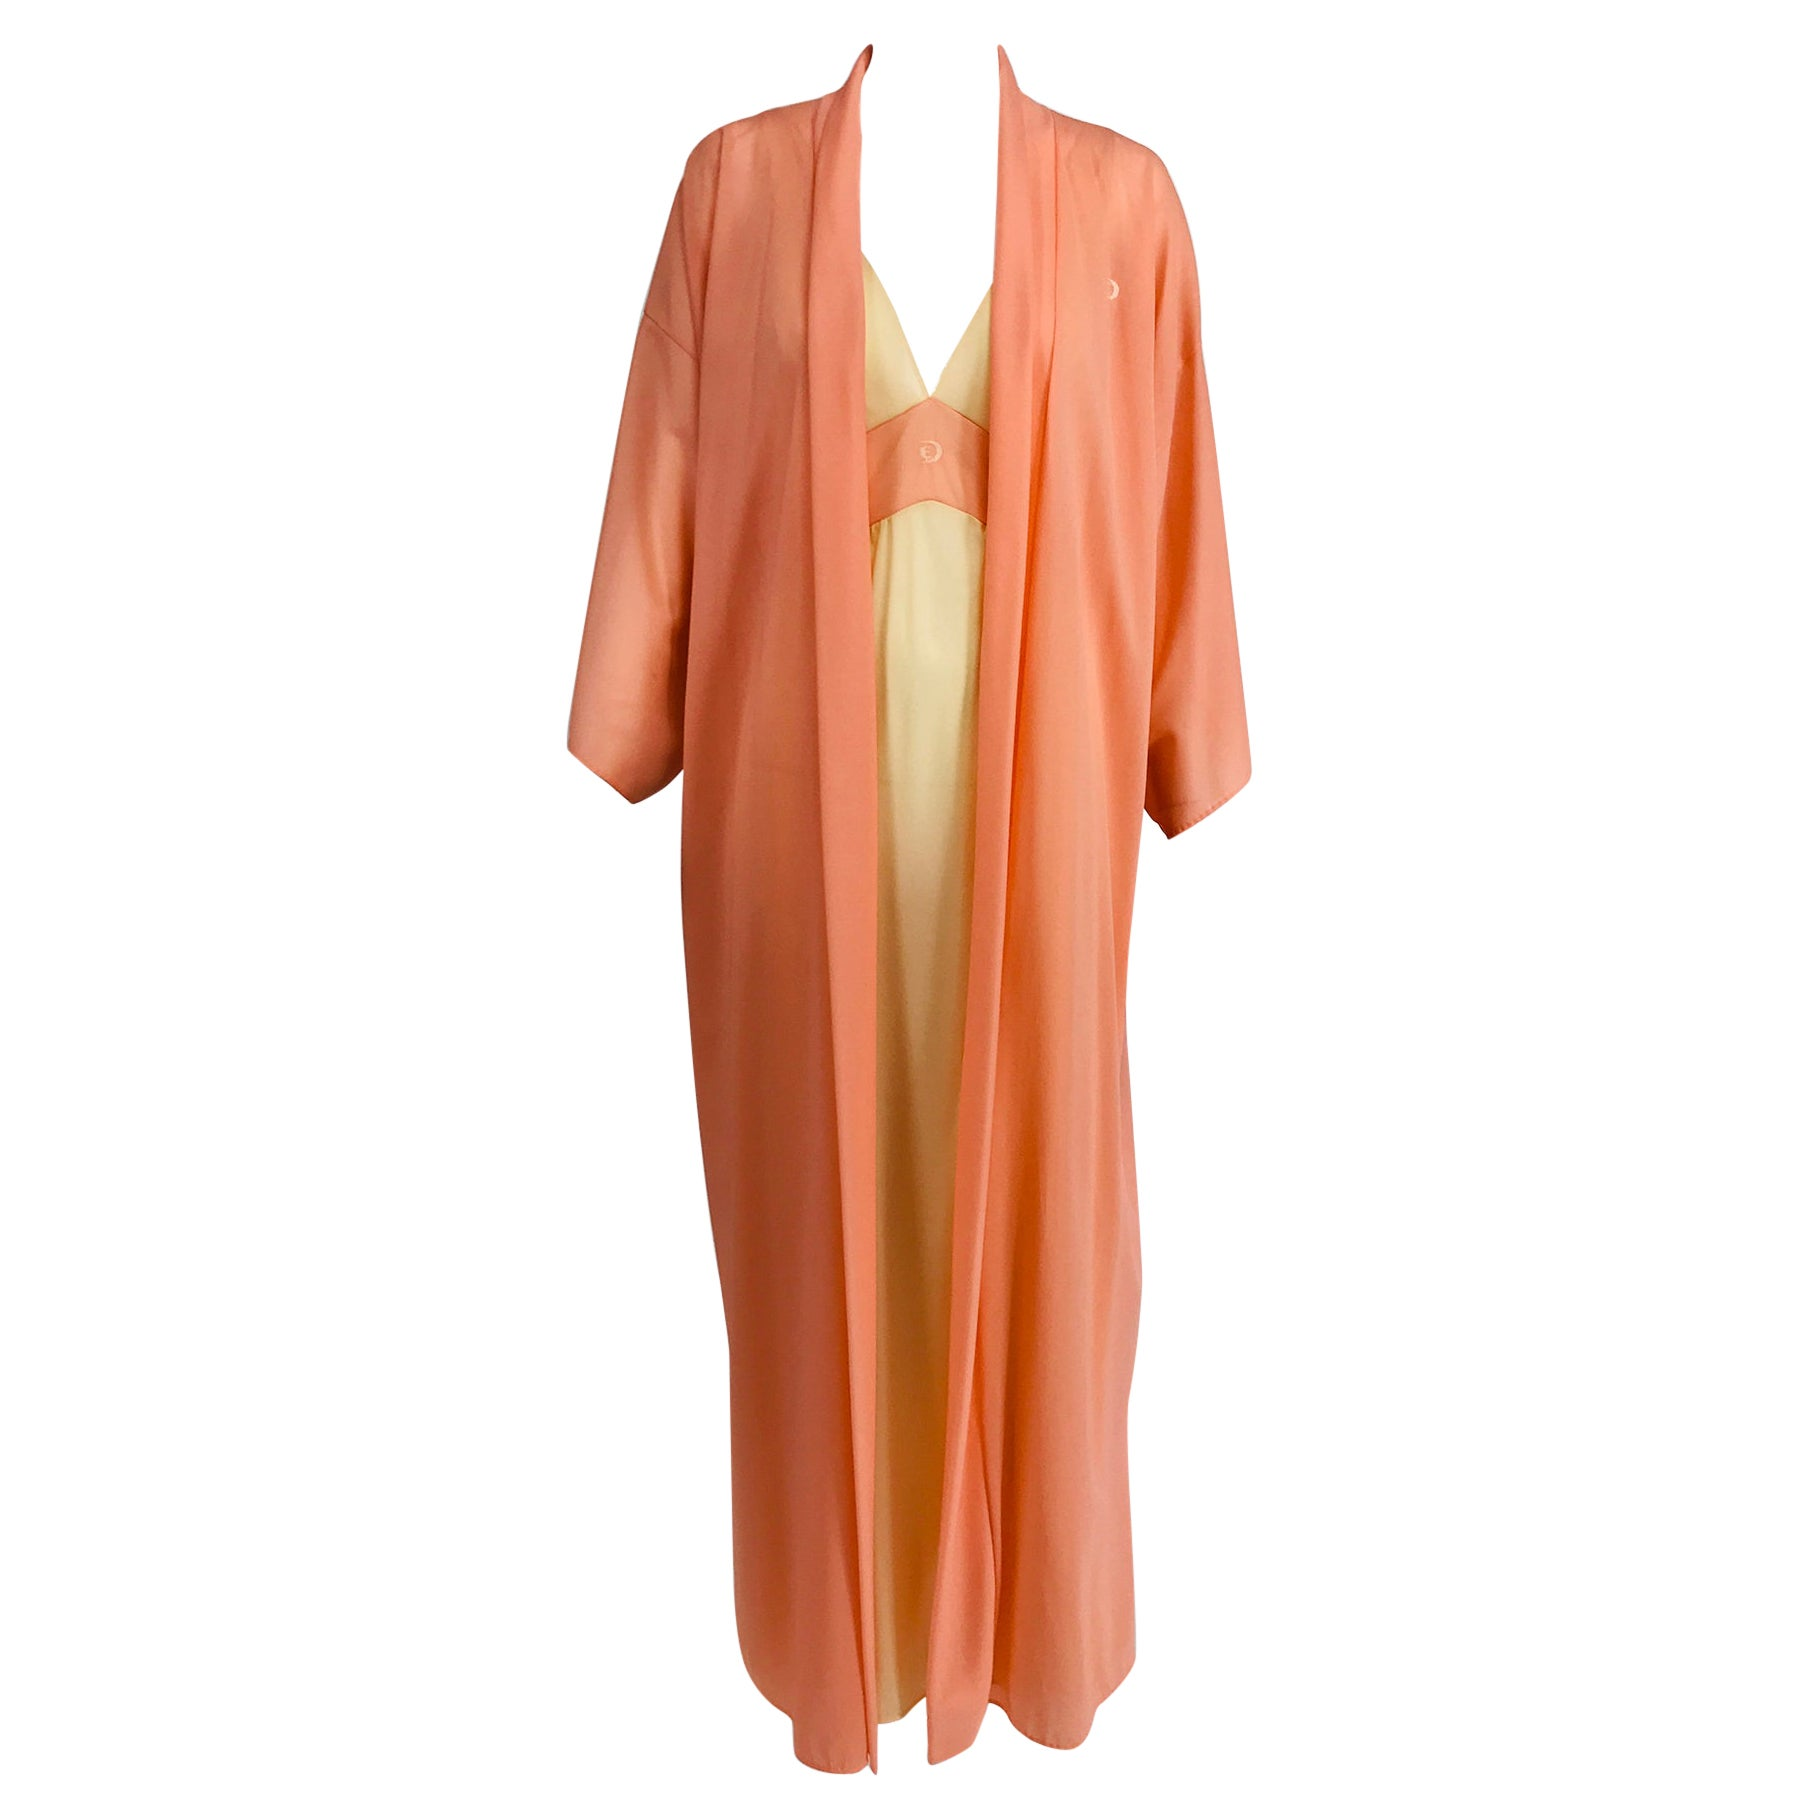 Emilio Pucci for Formfit Rogers 2pc. Sheer Peignoir Robe & Gown 1970s